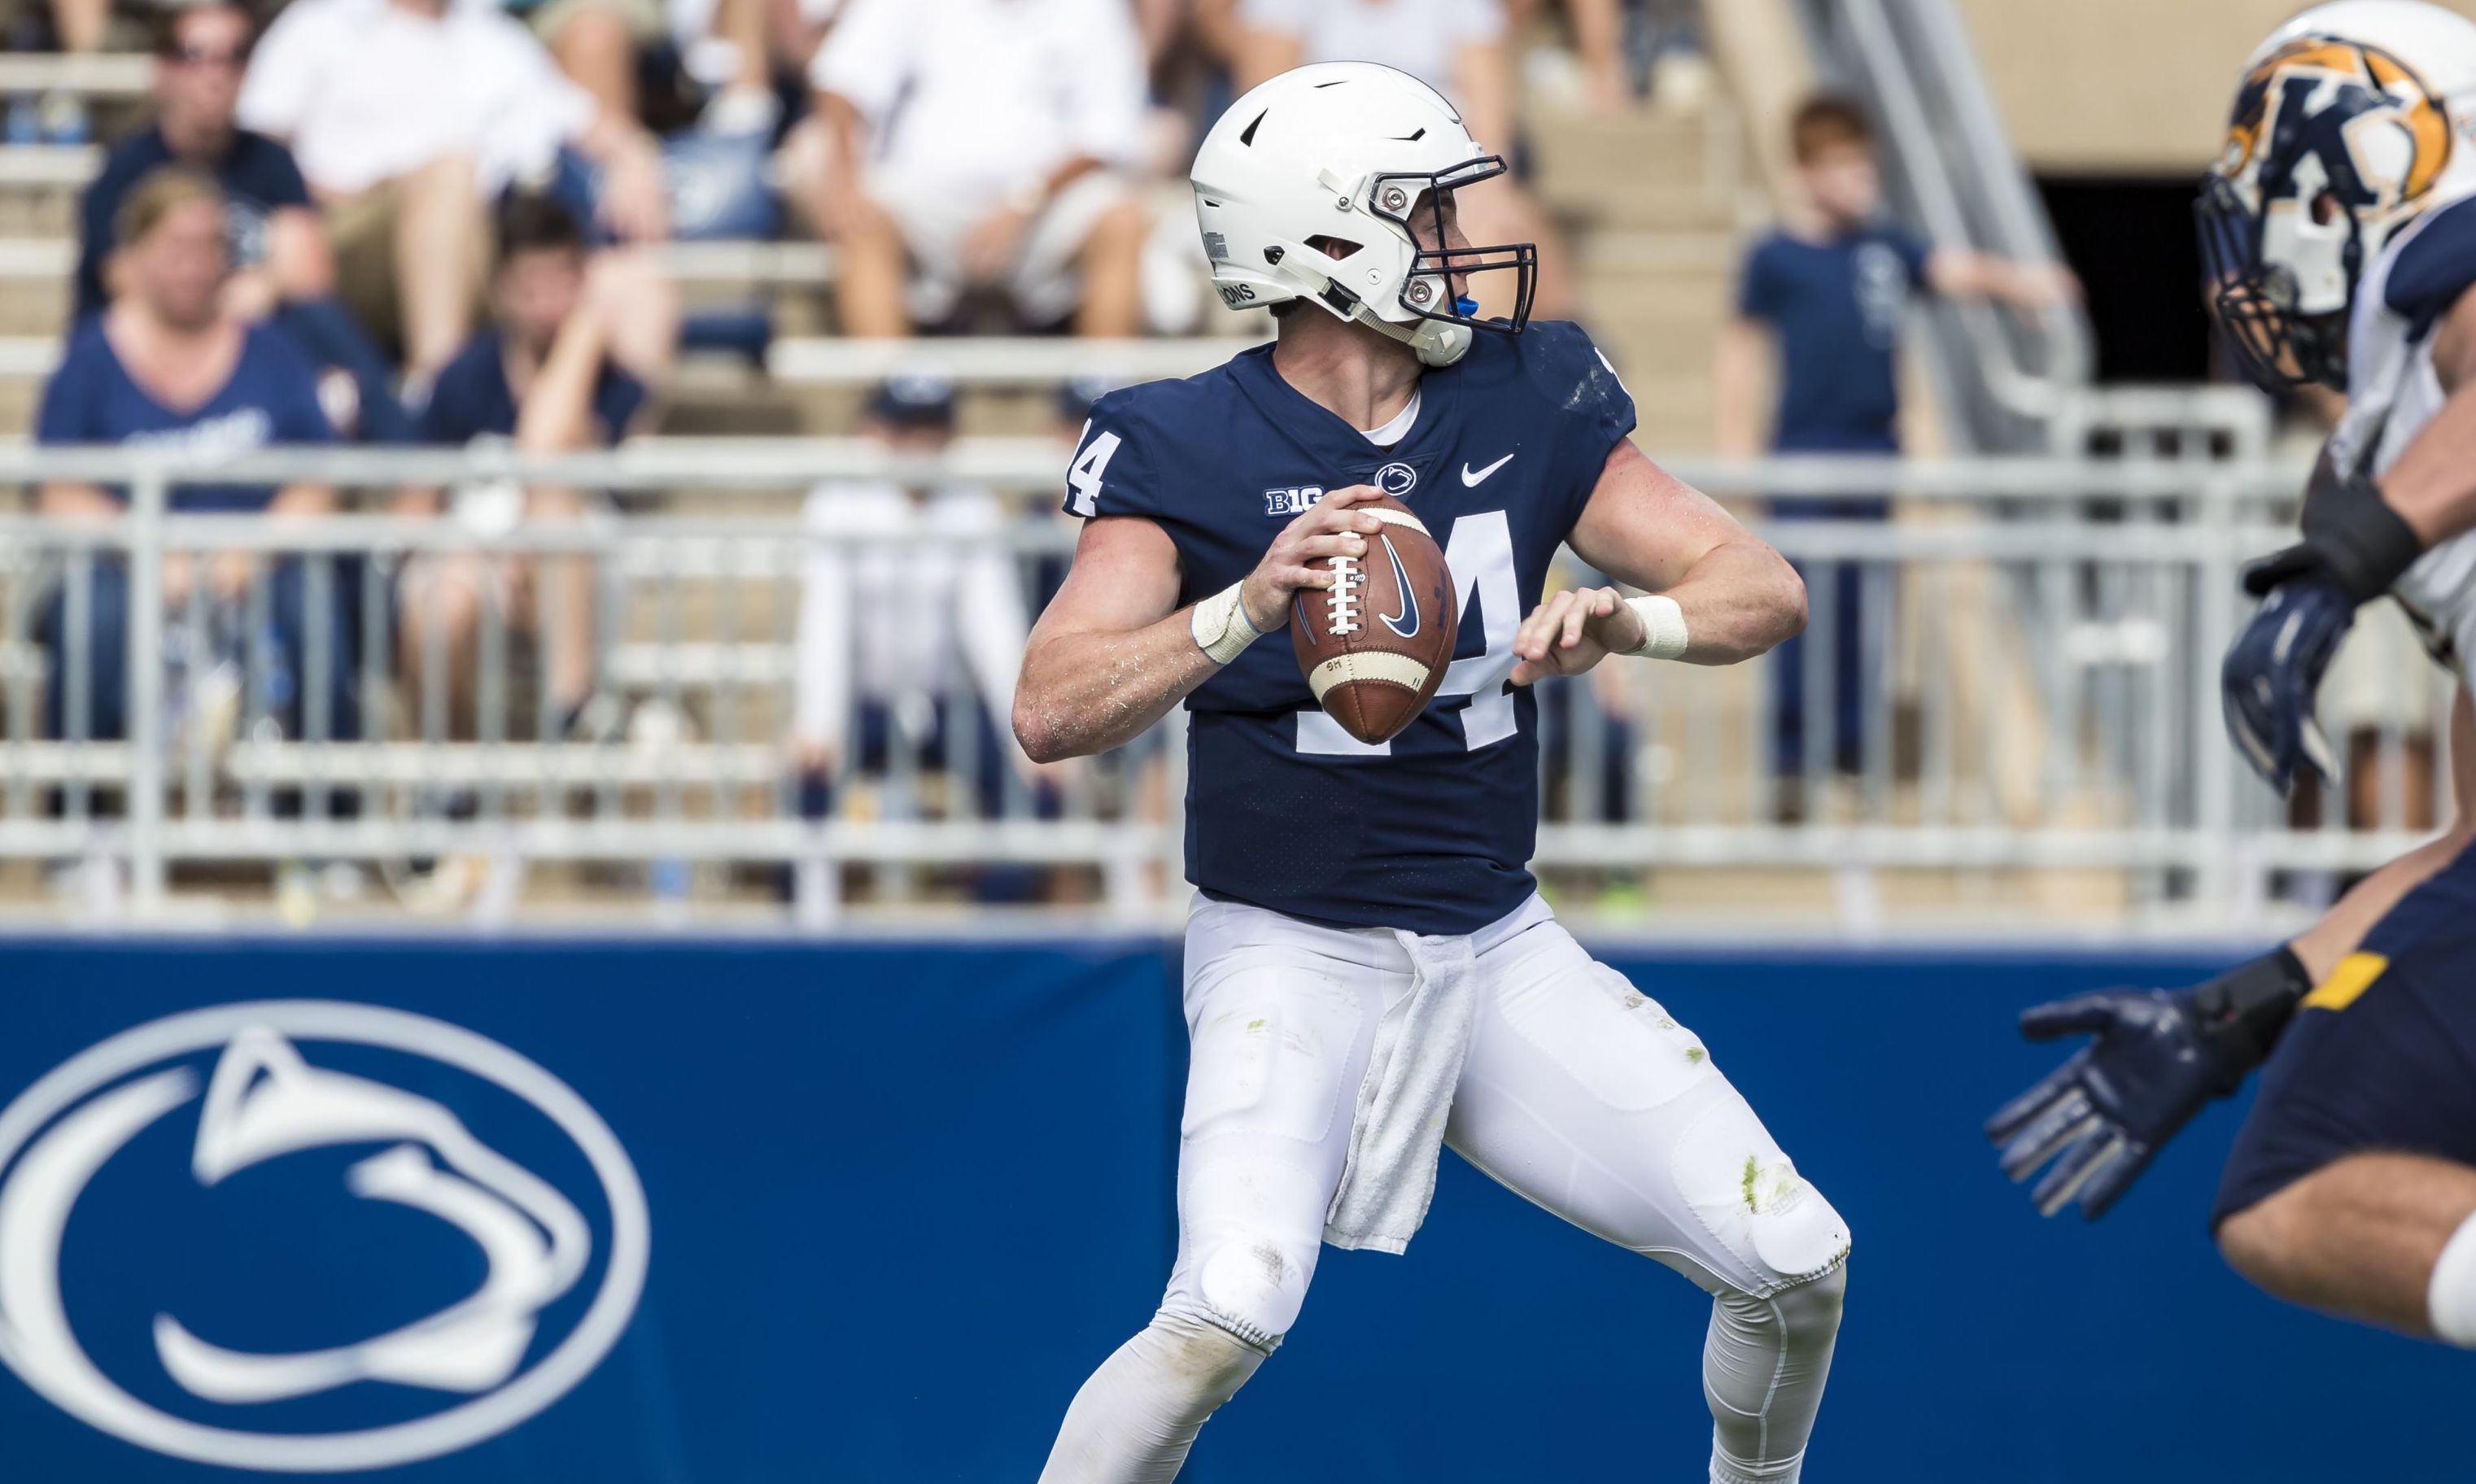 STATE COLLEGE, PA - SEPTEMBER 15: Sean Clifford #14 of the Penn State Nittany Lions throws a pass for a touchdown against the Kent State Golden Flashes during the second half at Beaver Stadium on September 15, 2018 in State College, Pennsylvania.  (Photo by Scott Taetsch/Getty Images)